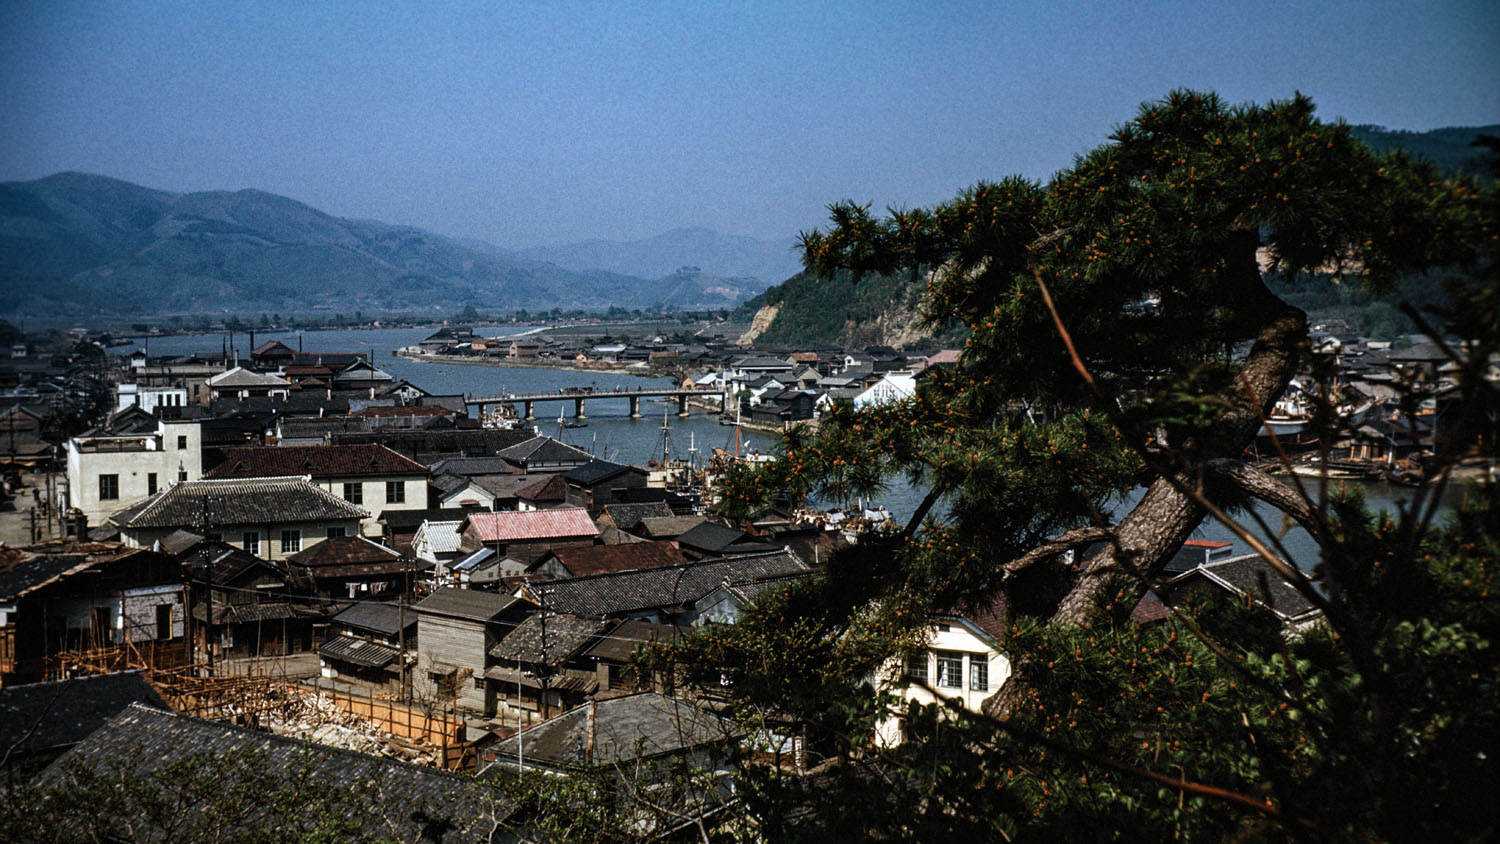 419-Distant View of Kyukitakami River from?